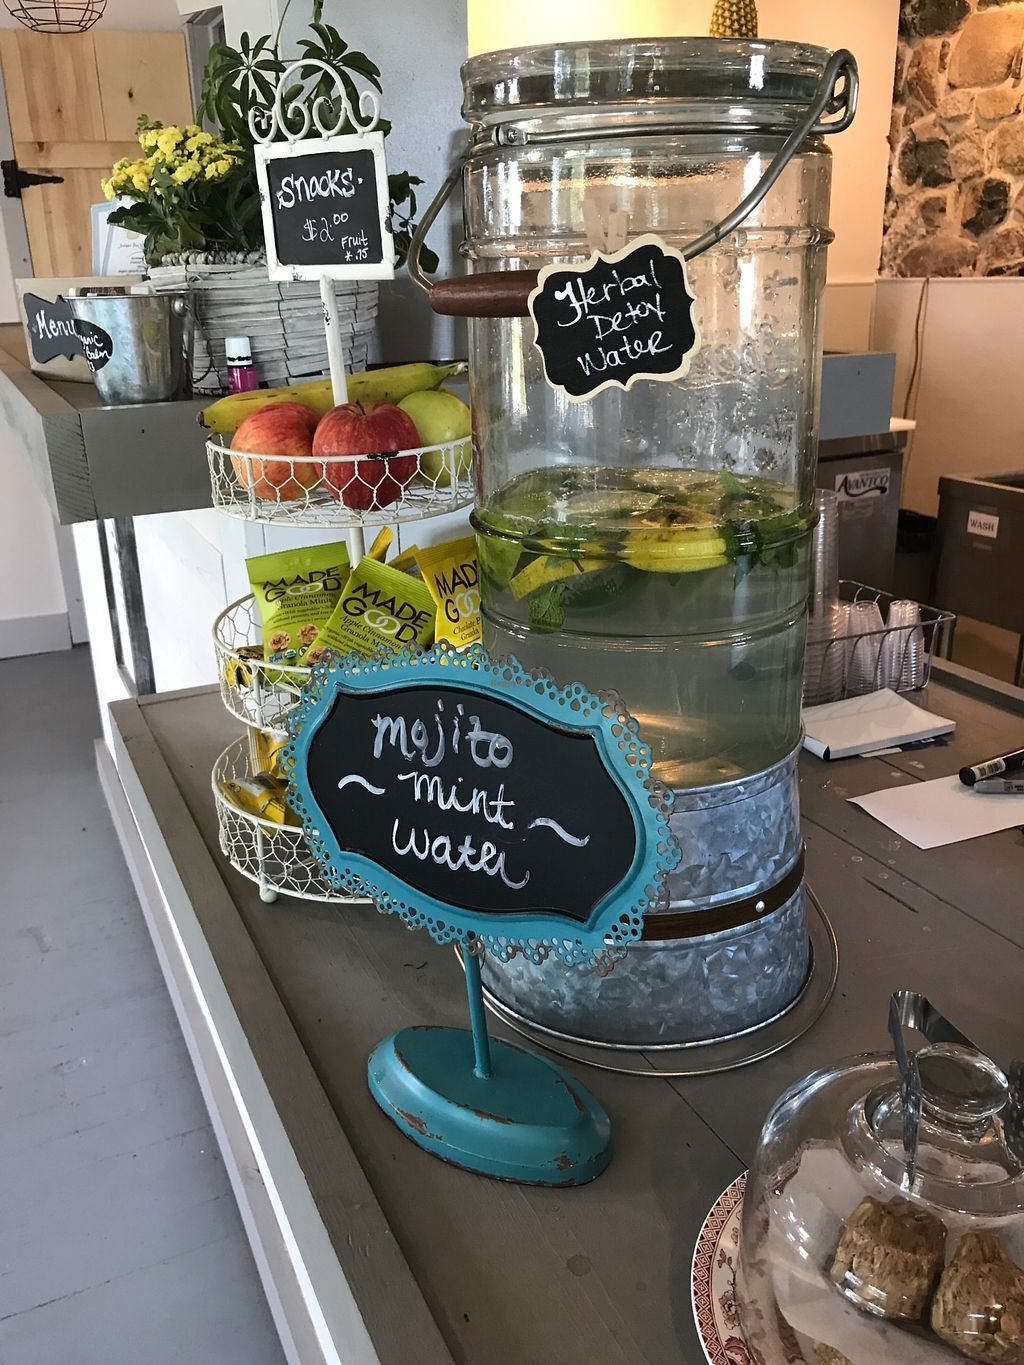 """Photo of Juniper Tree Juice Bar and Wellness  by <a href=""""/members/profile/JuniperTree"""">JuniperTree</a> <br/>Energy bites and grab and go vegan snacks <br/> March 4, 2018  - <a href='/contact/abuse/image/104632/366458'>Report</a>"""